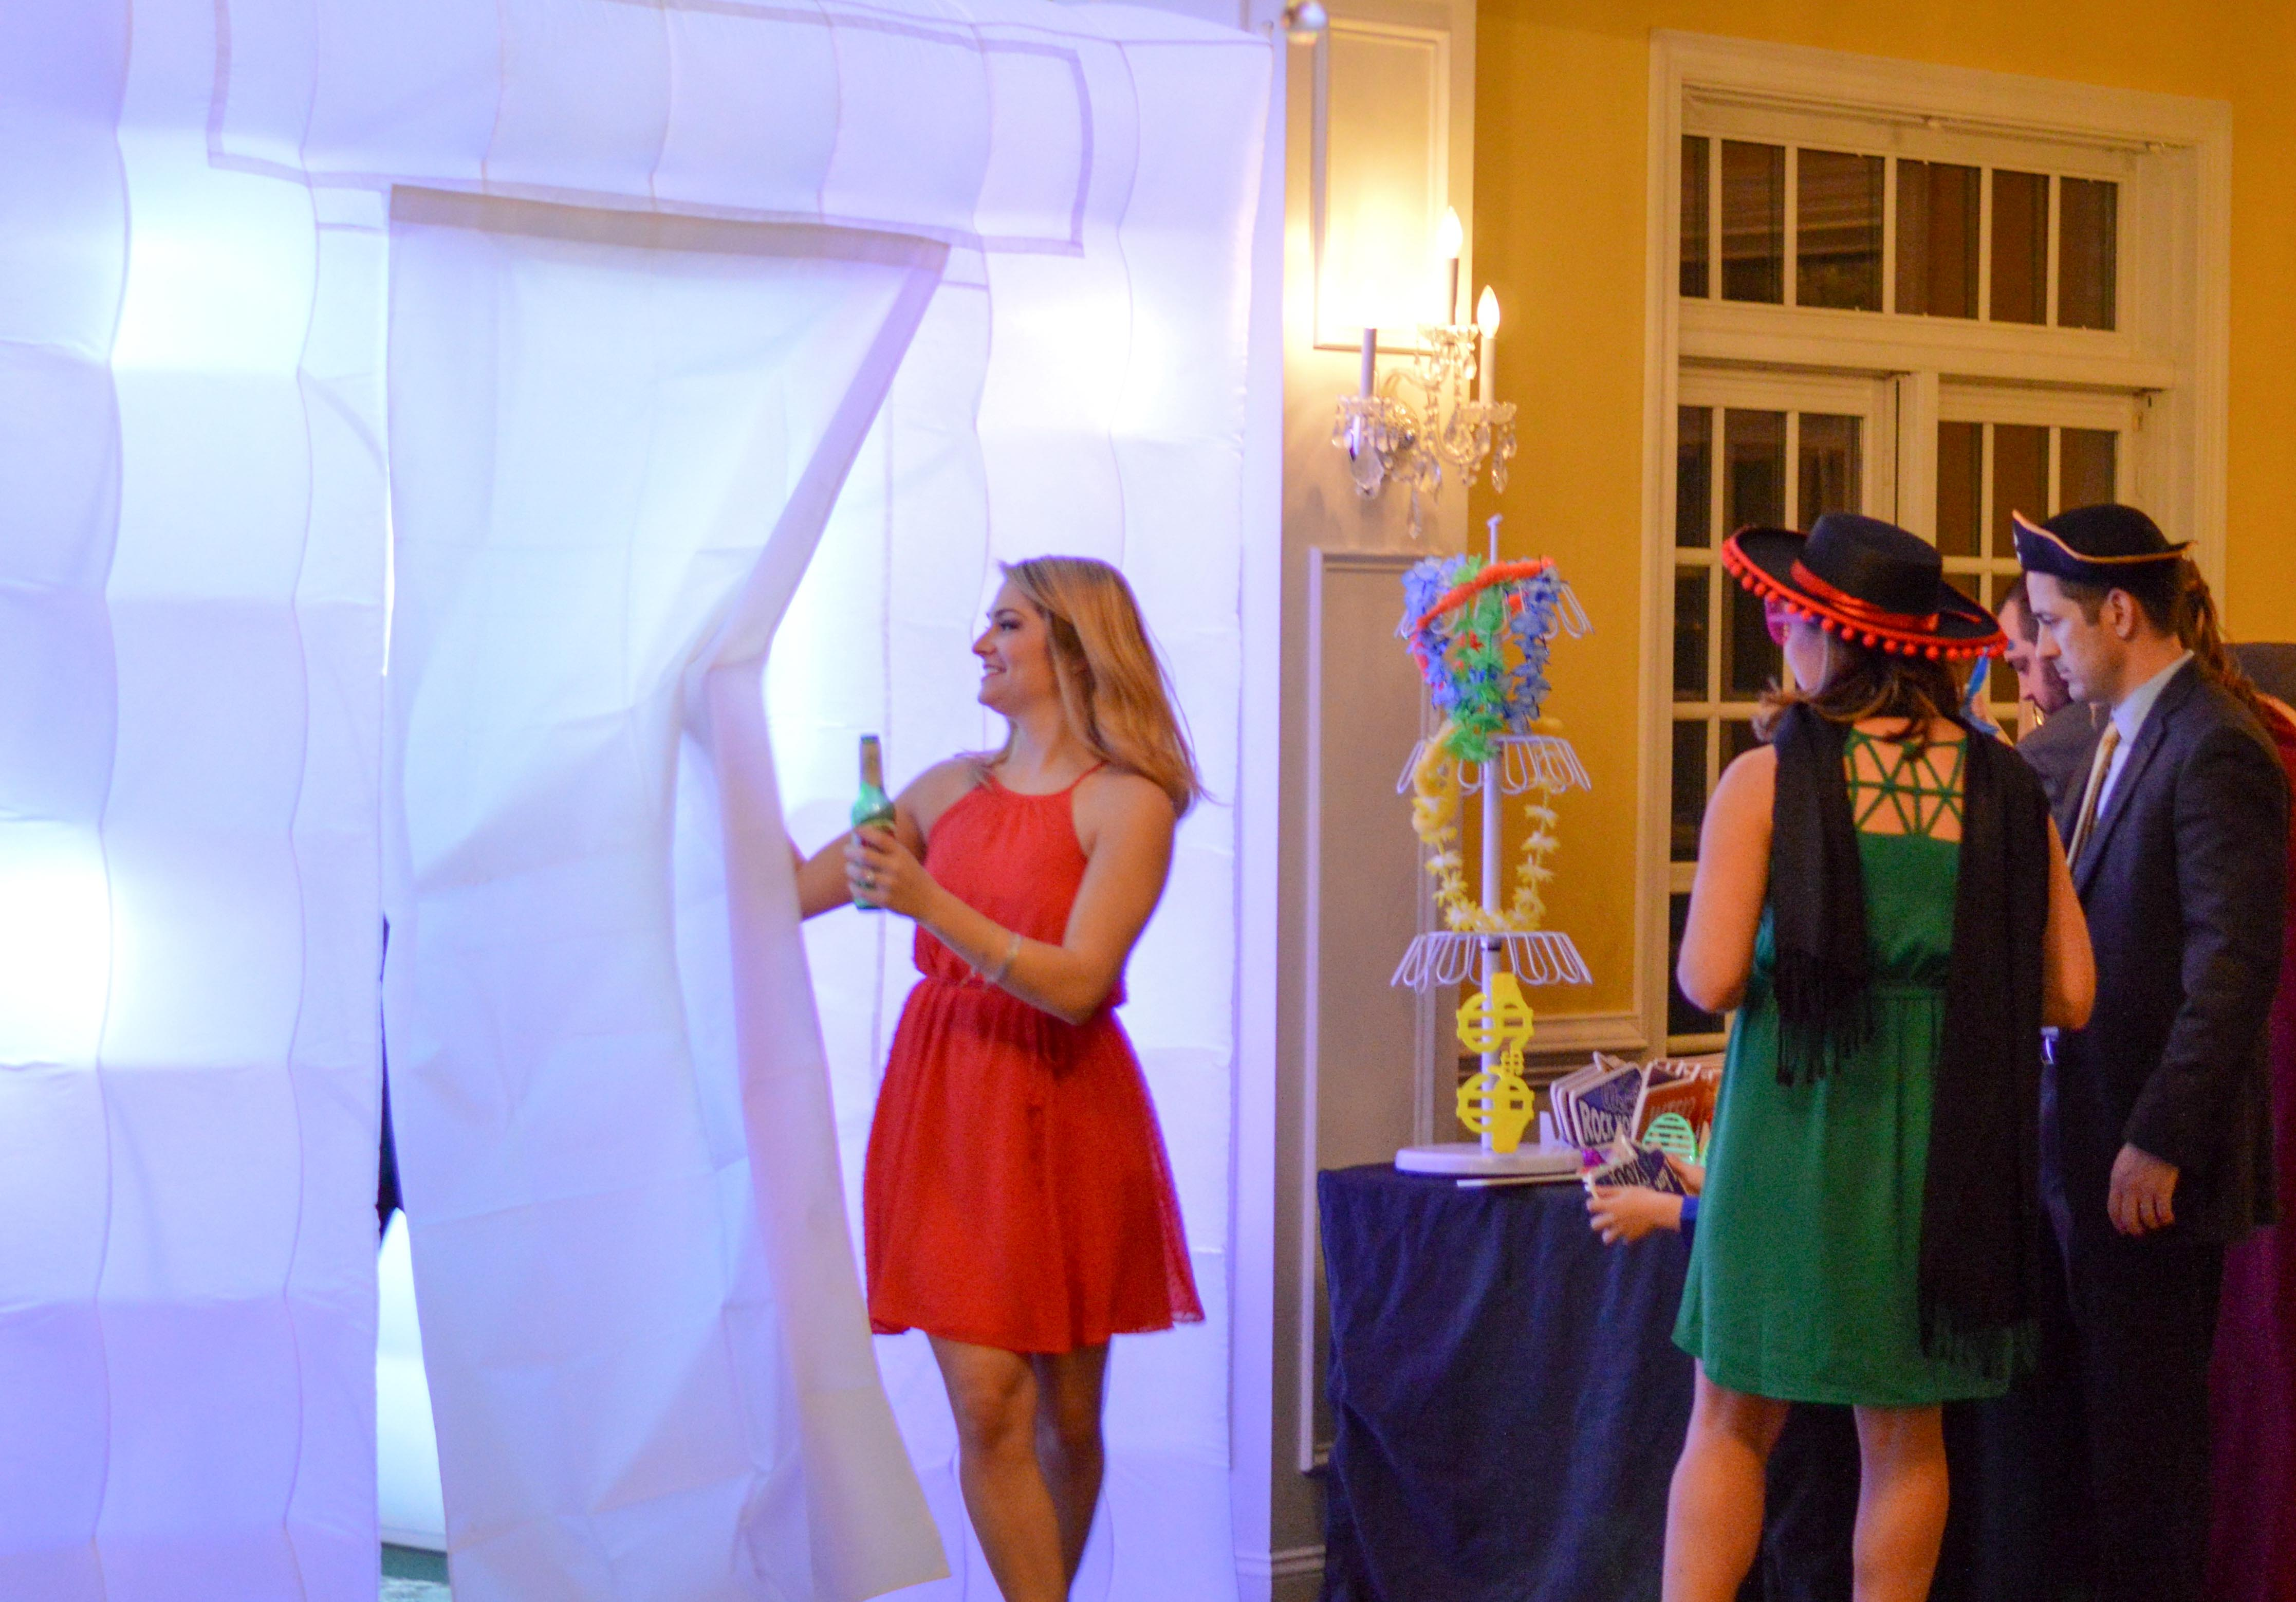 Guests lining up to take awesome pictures in the photo booth!